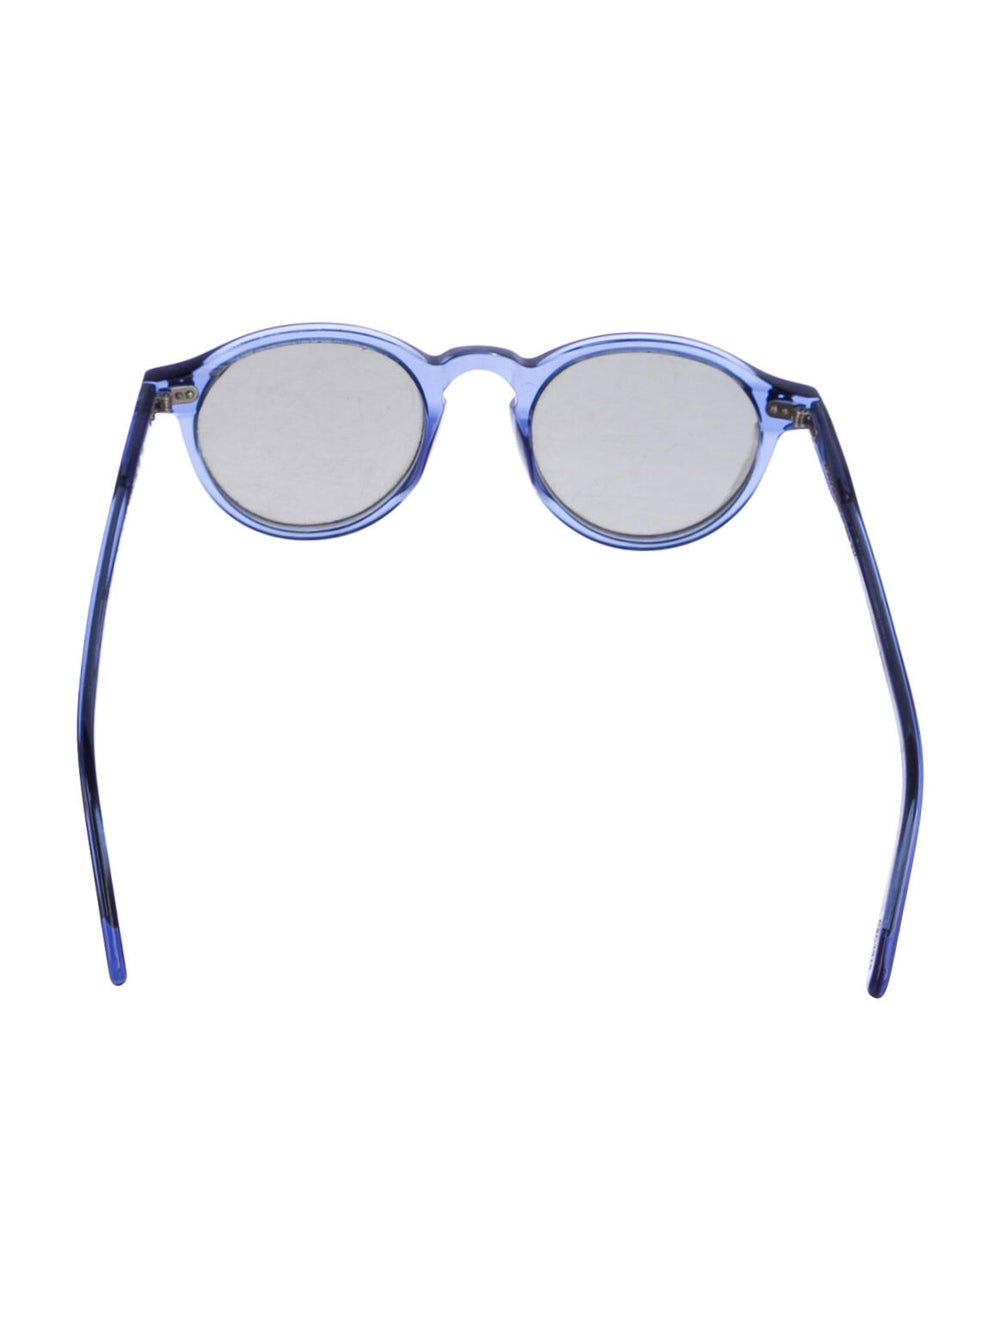 Moscot Round Tinted Sunglasses Blue - image 3